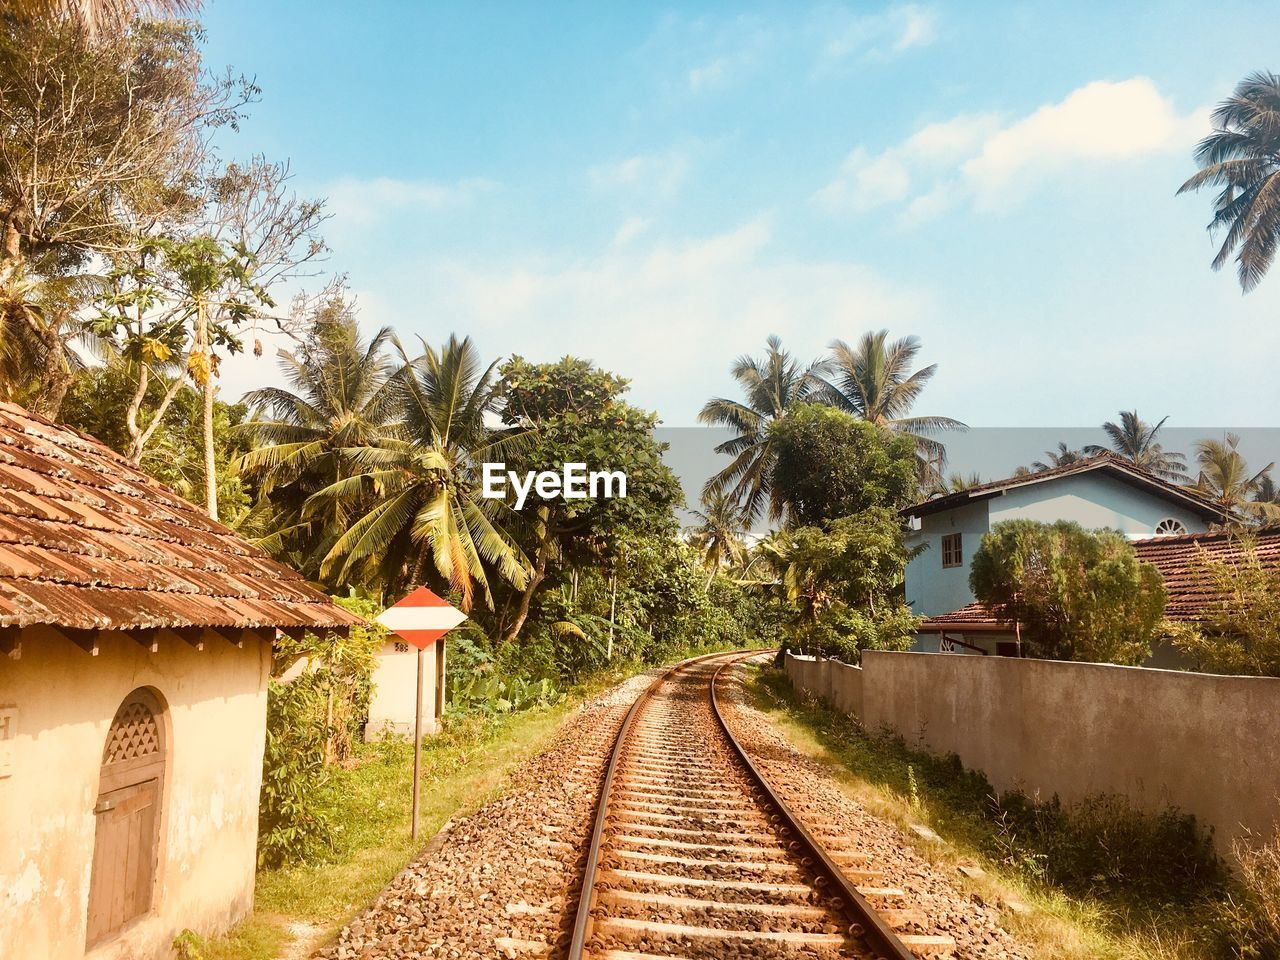 tree, railroad track, palm tree, sky, the way forward, transportation, built structure, rail transportation, day, no people, architecture, outdoors, cloud - sky, scenics, nature, building exterior, beauty in nature